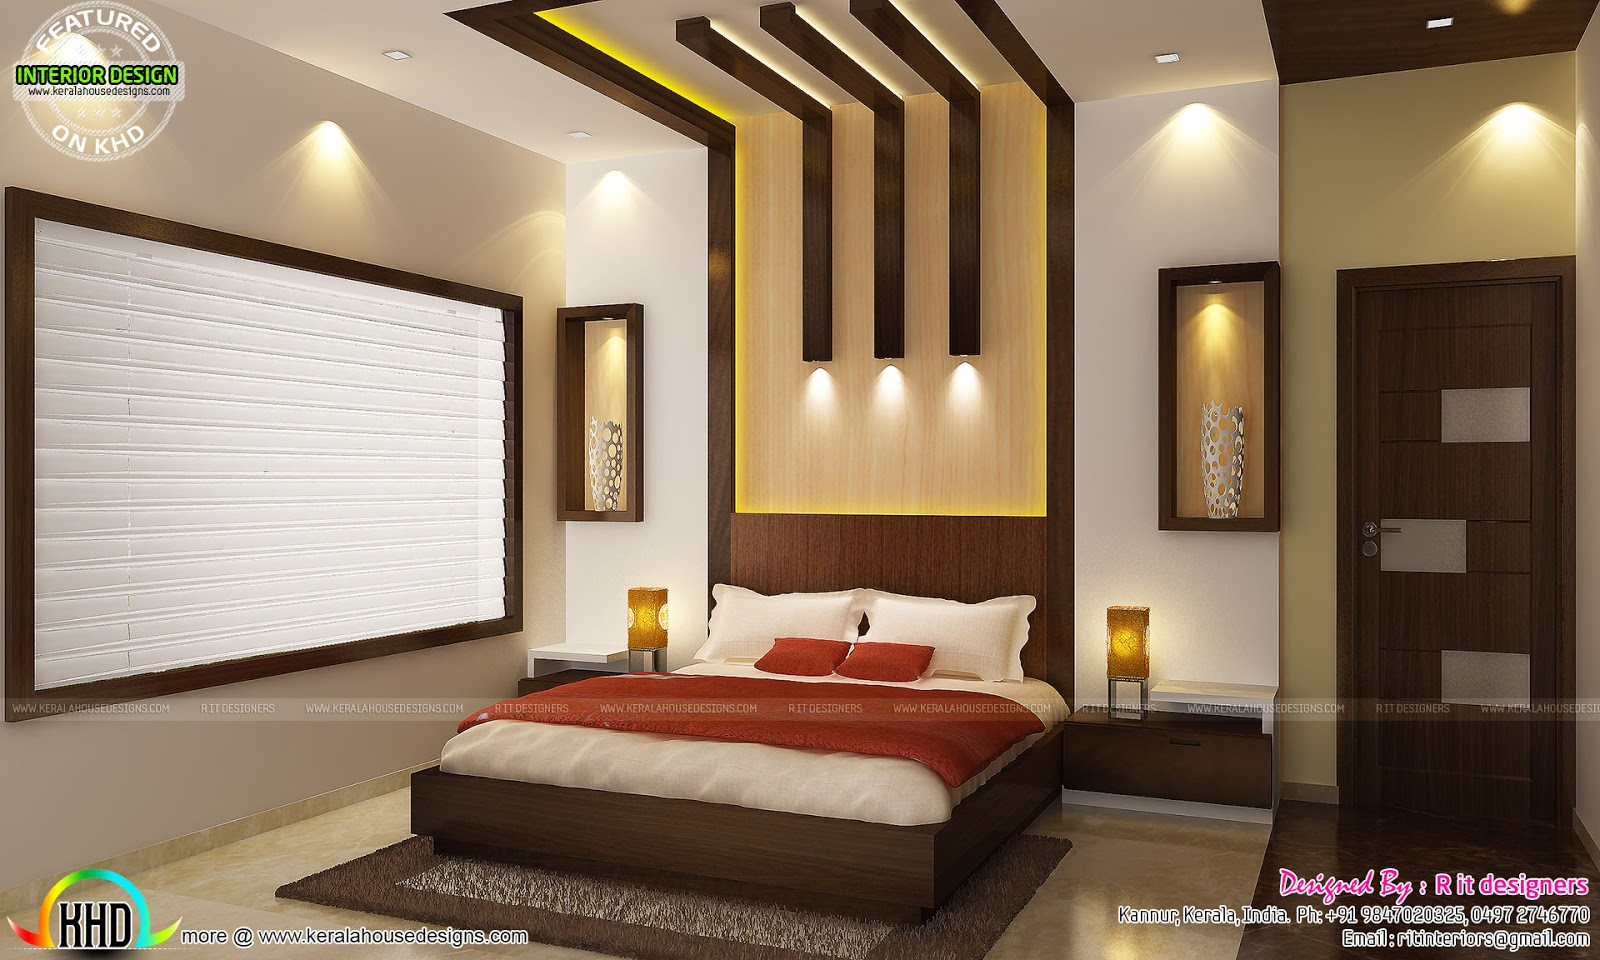 Kitchen living bedroom dining interior decor kerala for Design house decor